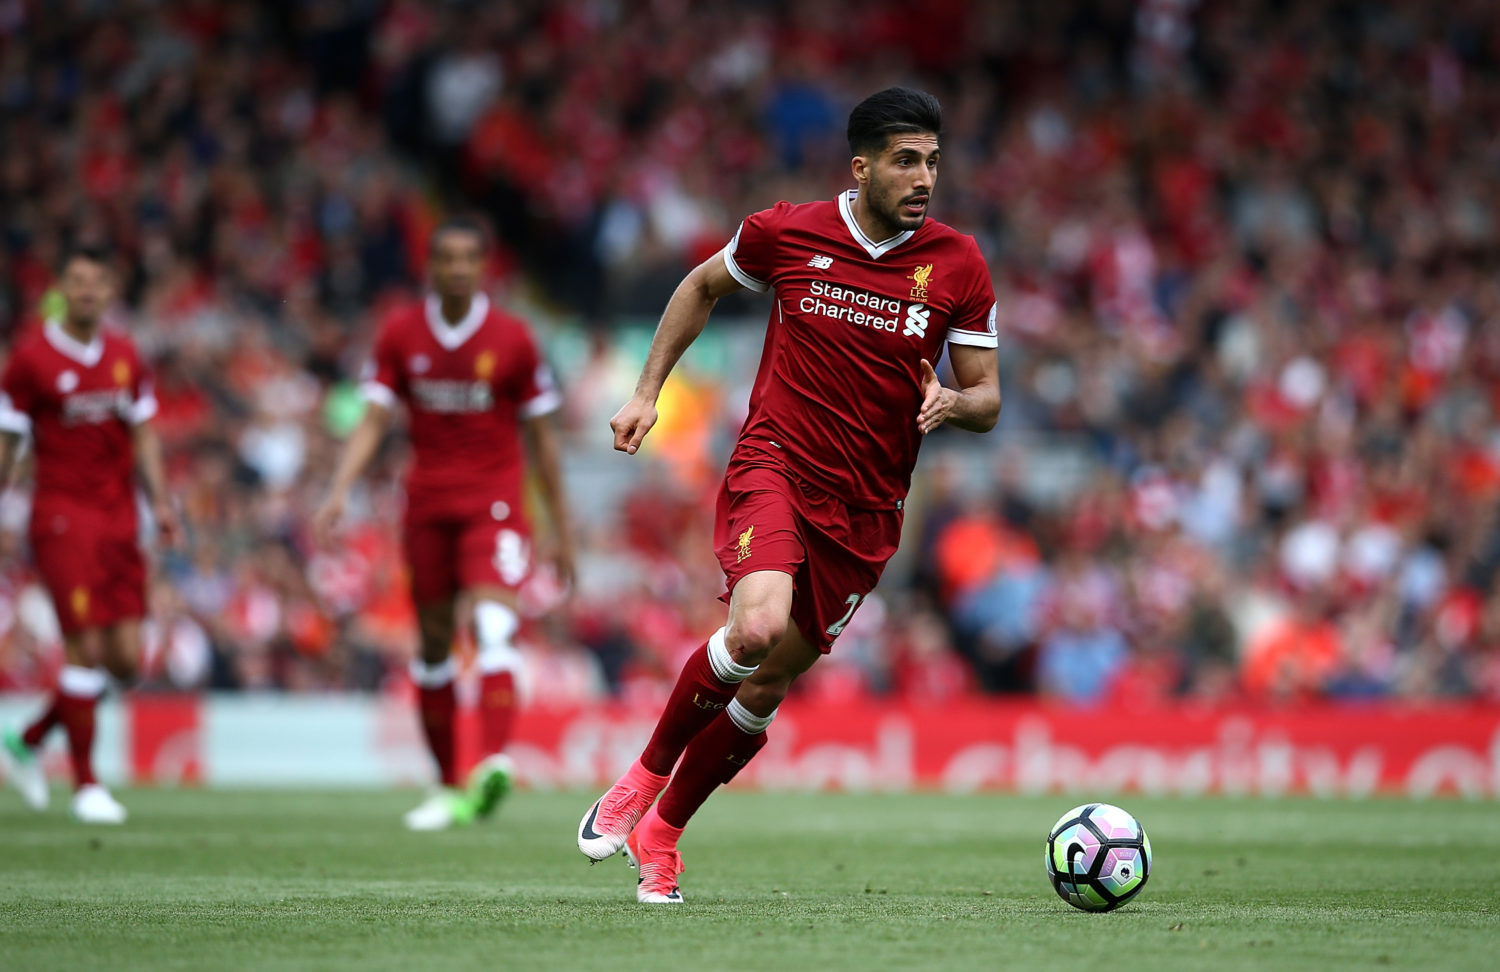 Emre Can told to make decision on future 'within the next week'